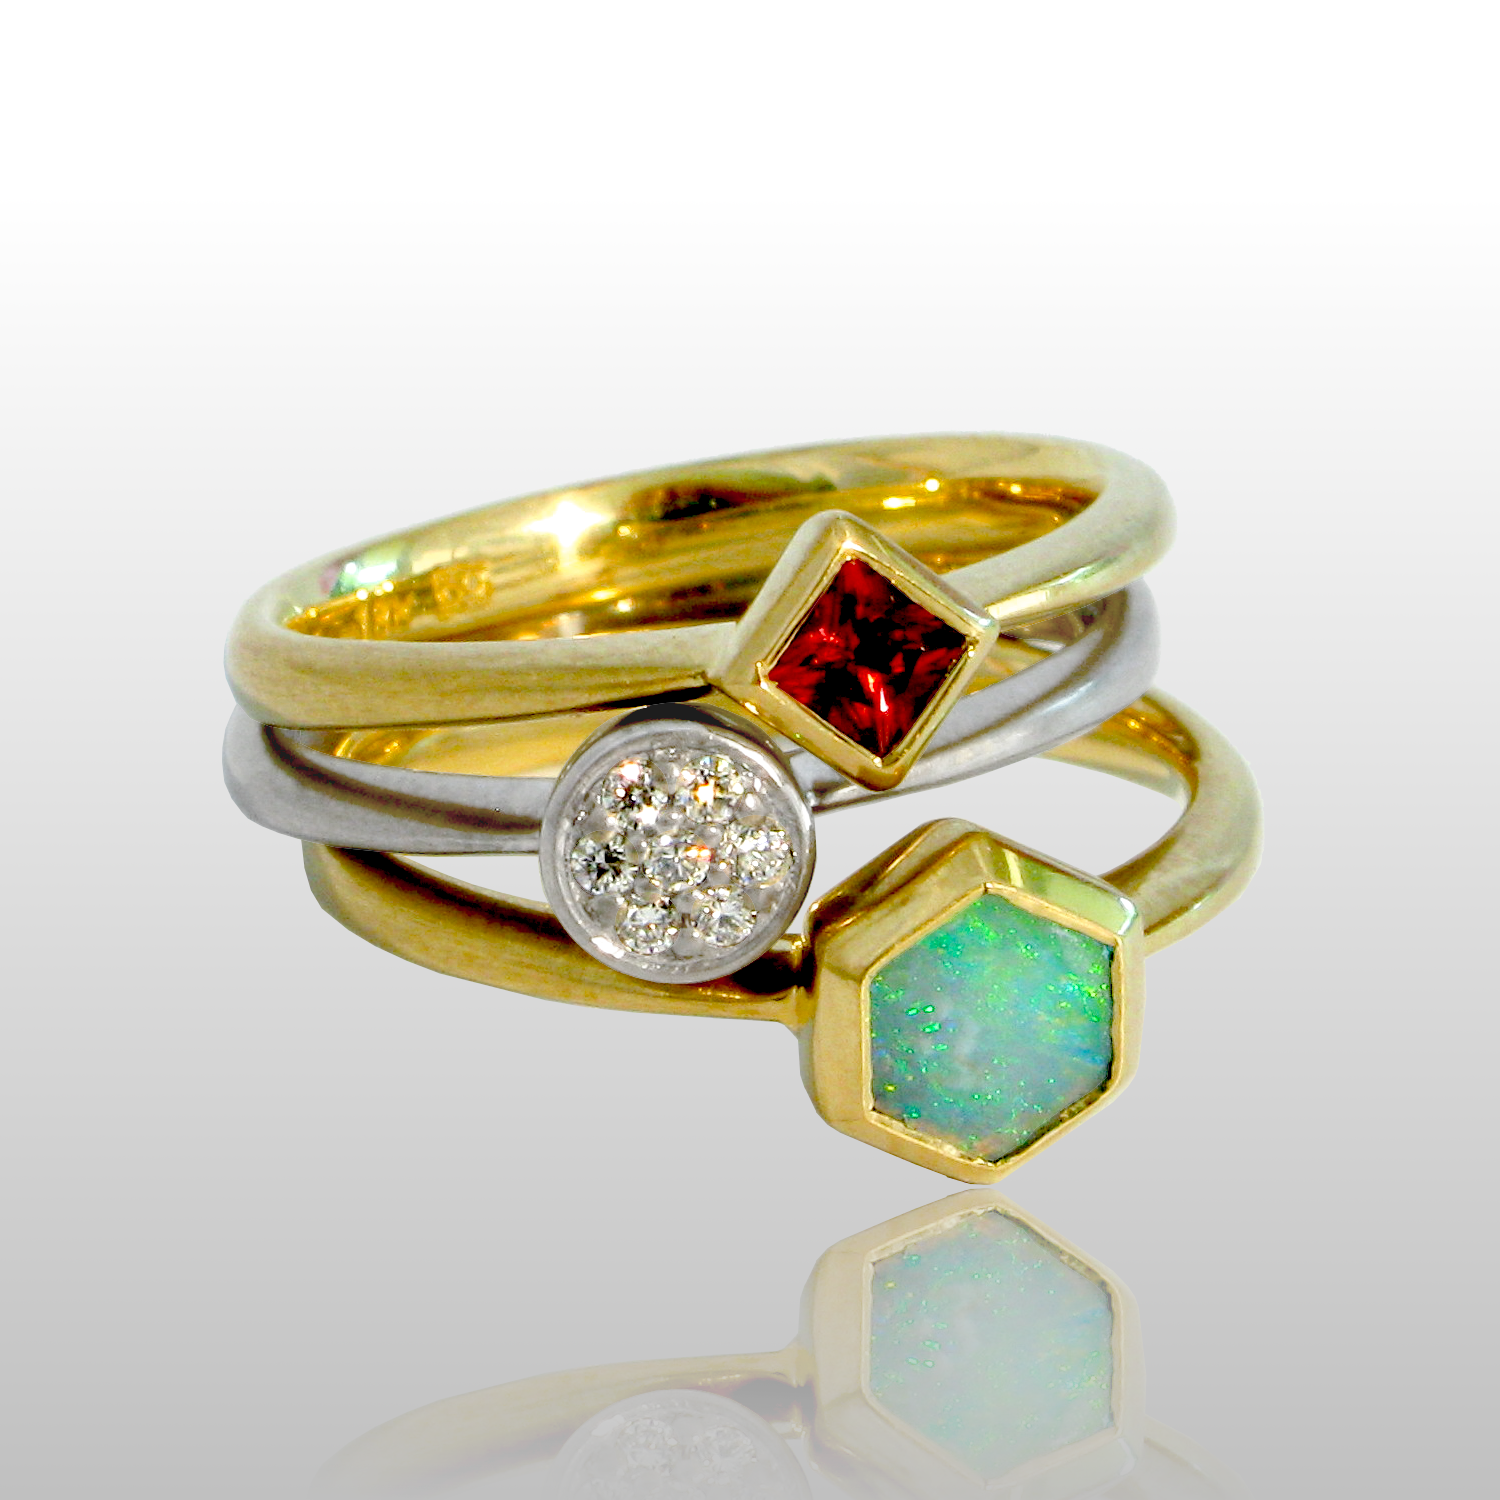 Stackable designer rings in 18k gold 'Stax' with diamond pavé, opal and malayan garnet by Pratima Design Fine Art Jewelry